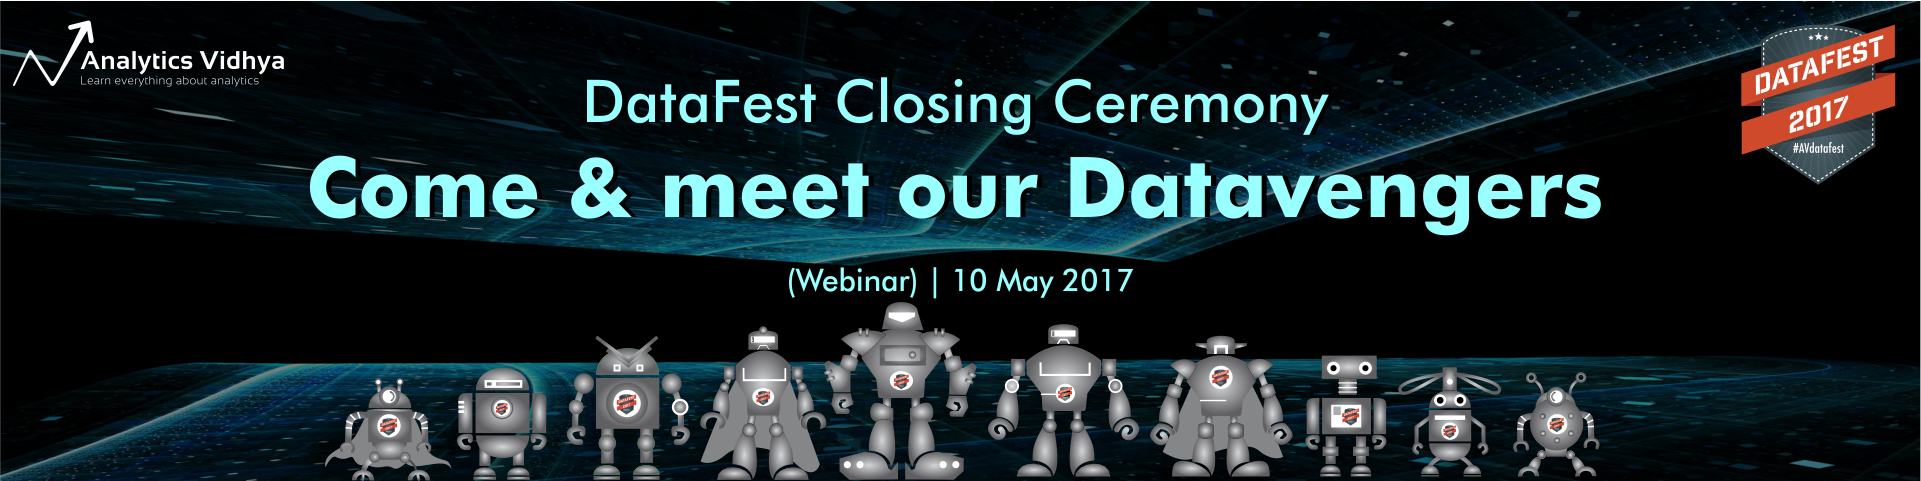 Cover image for DataFest Closing Ceremony